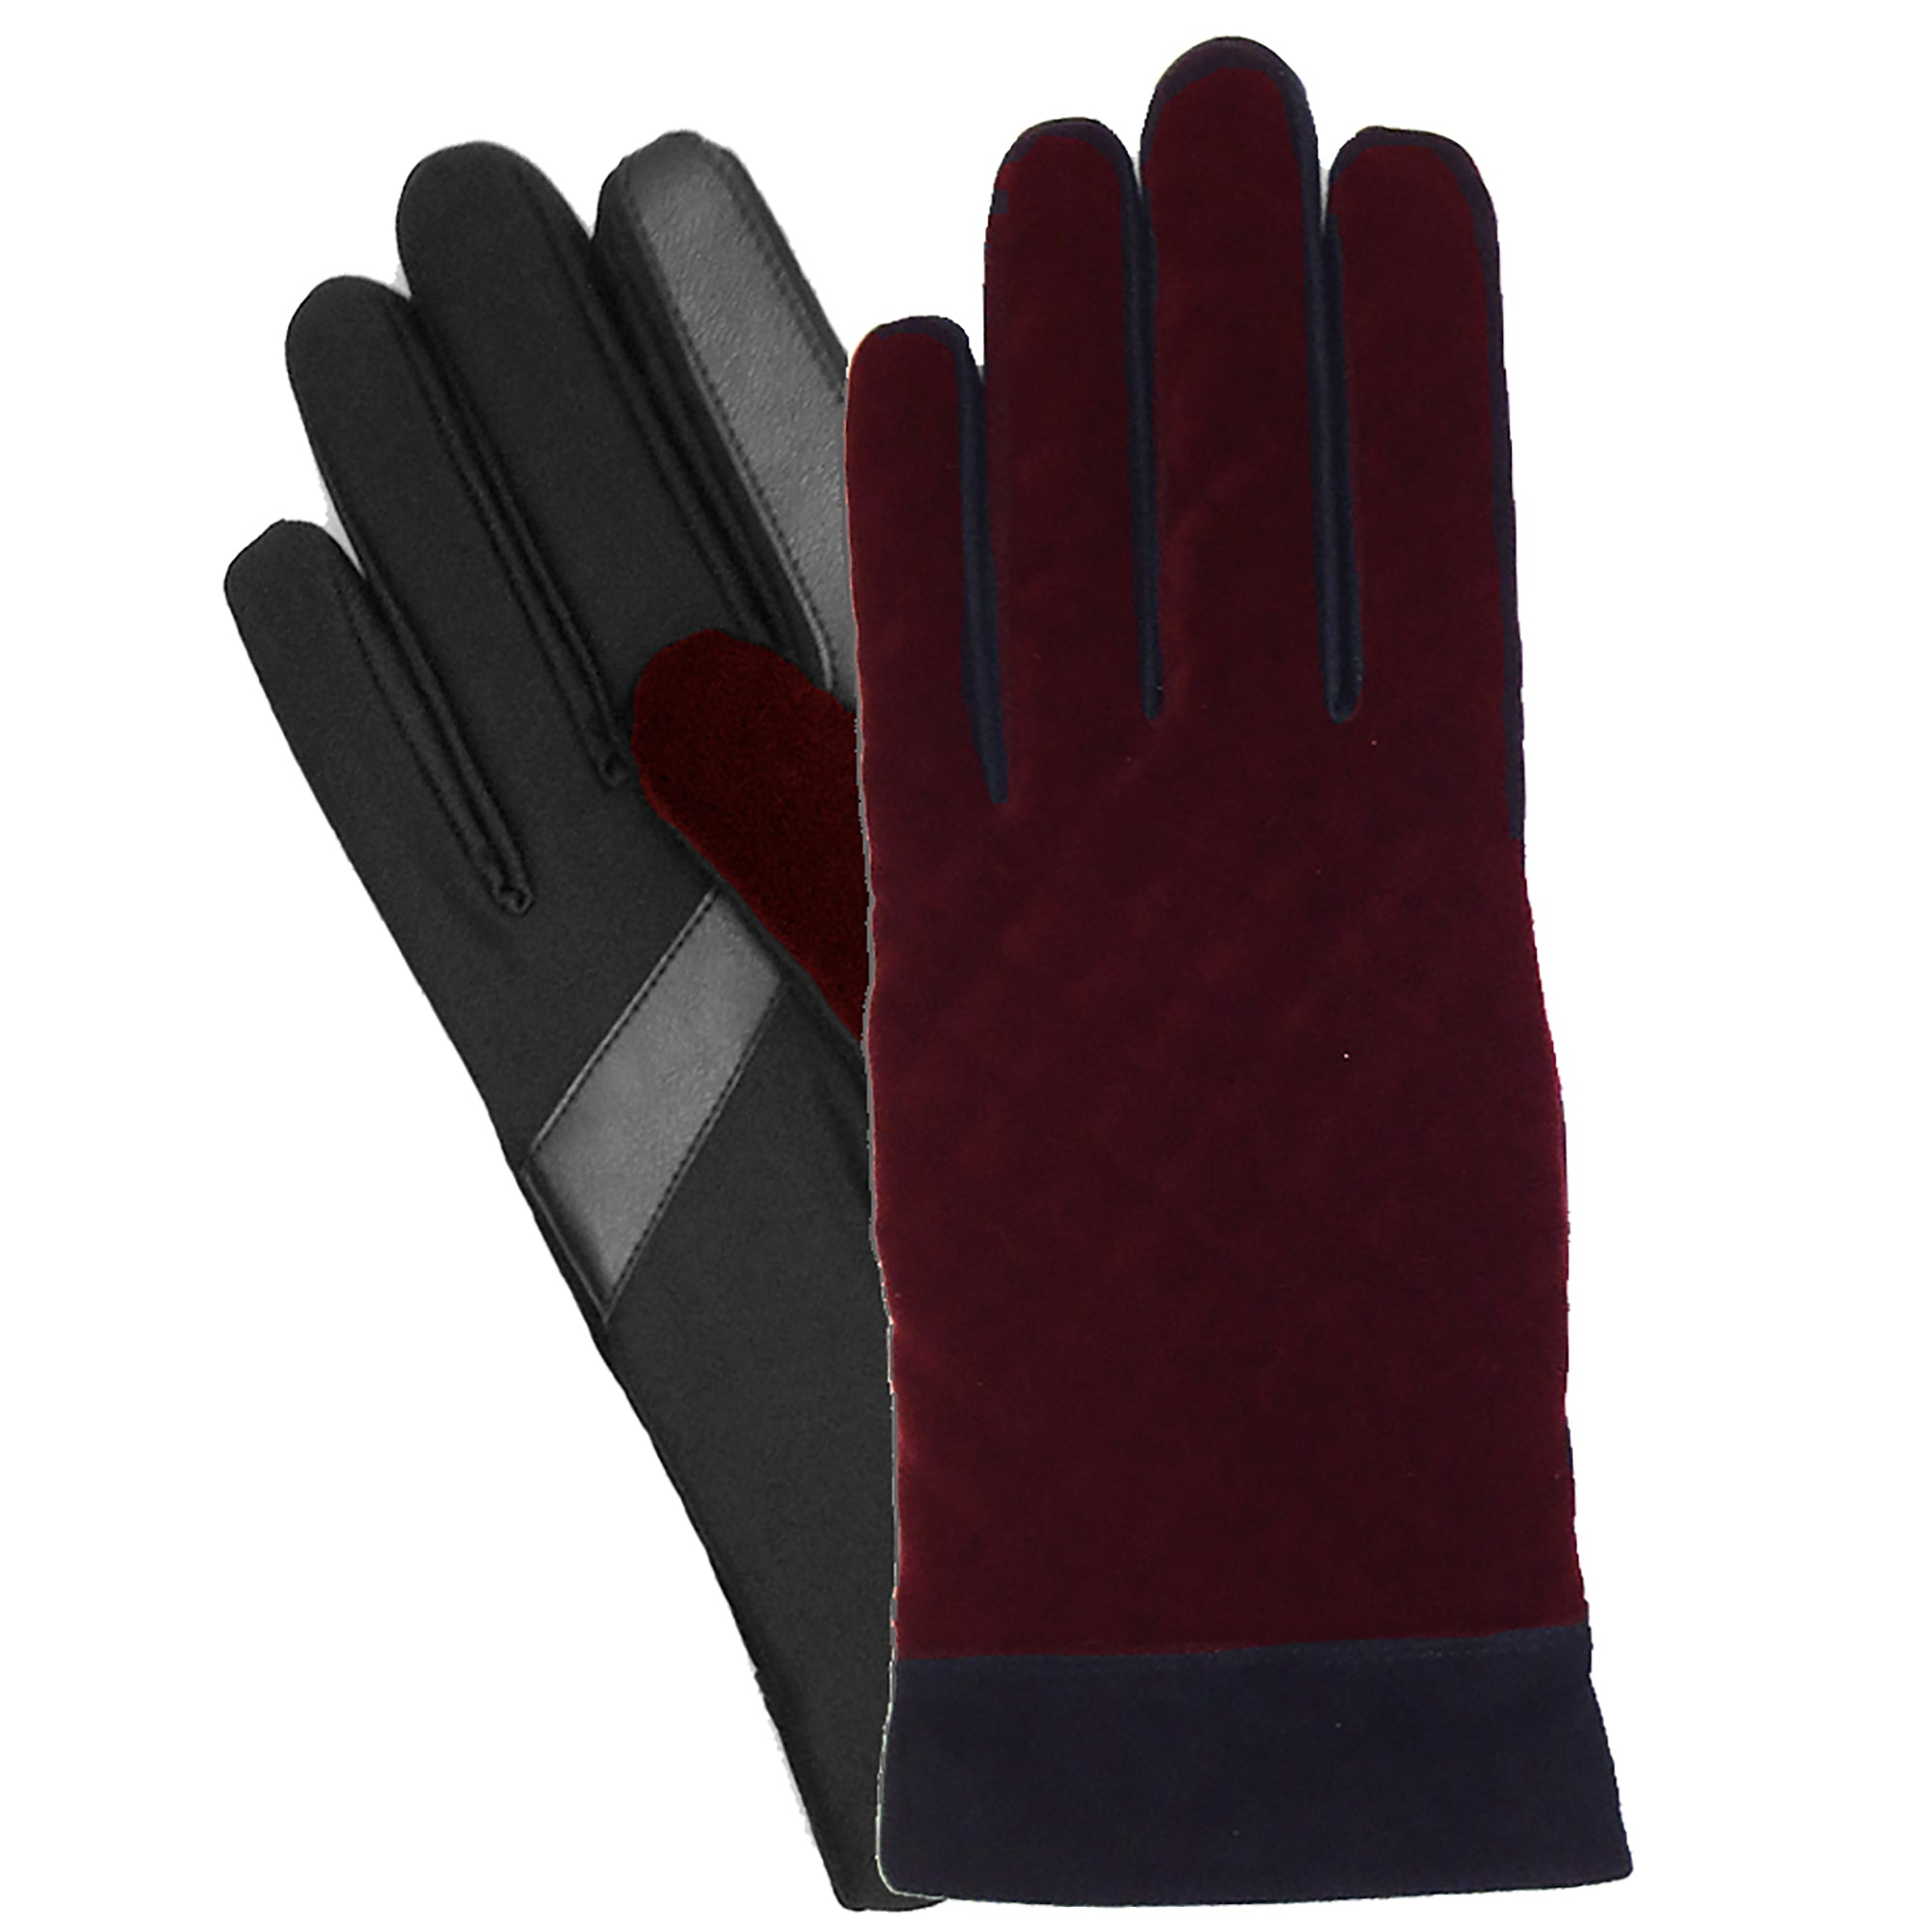 Isotoner Women's SmarTouch Textured Velvet Gloves